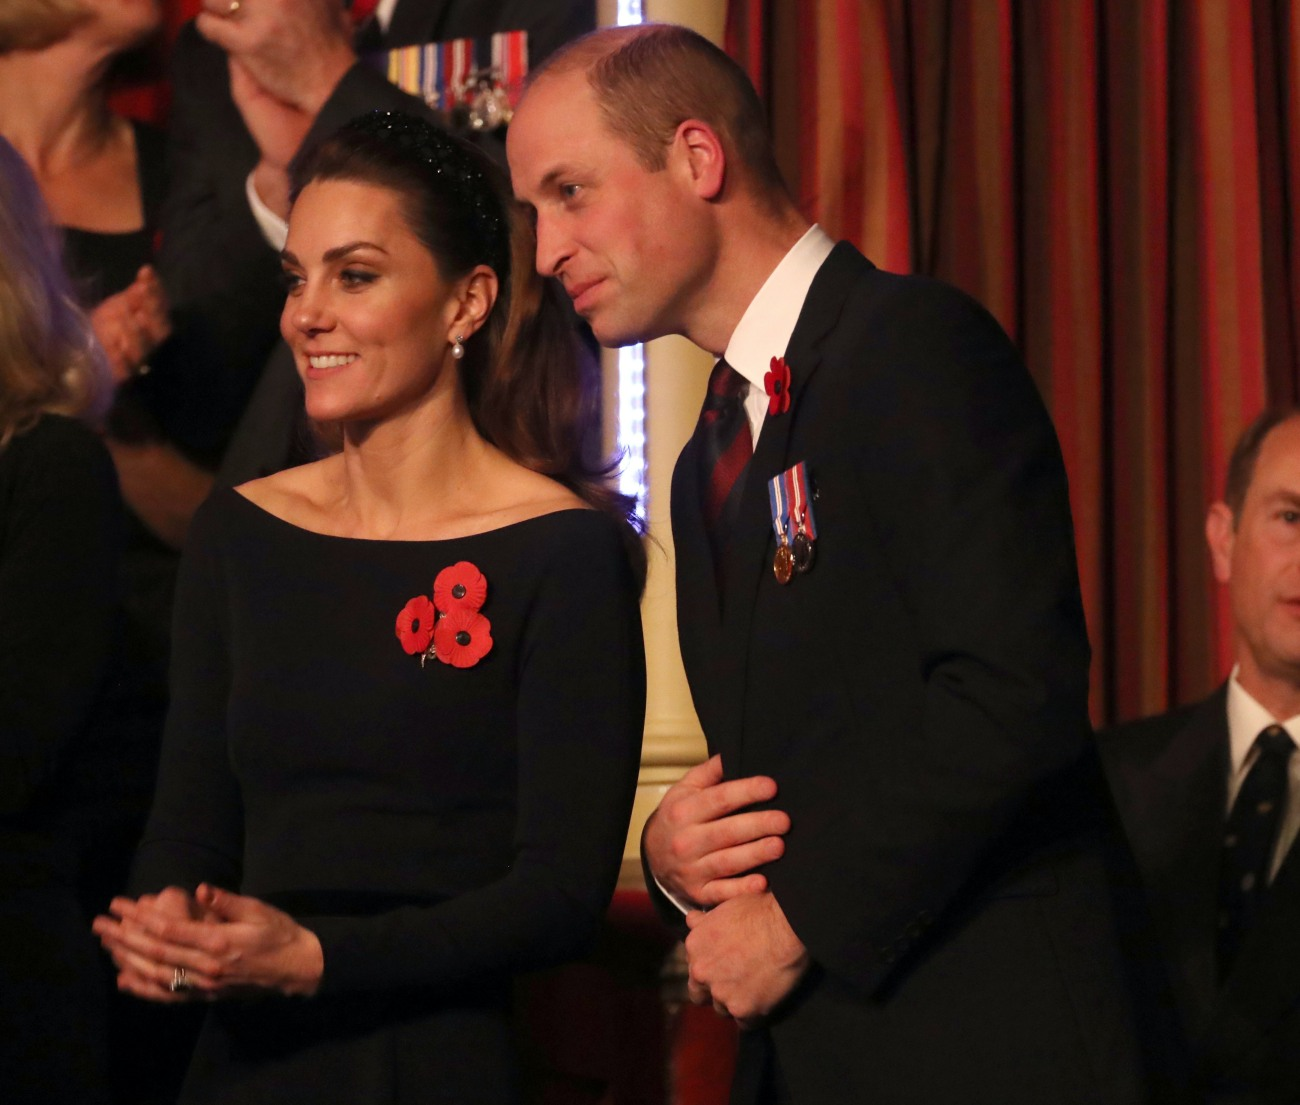 (L-R) Catherine, Duchess of Cambridge, Prince William, Duke of Cambridge and Prince Edward, Earl of Wessex attend the annual Royal British Legion Festival of Remembrance at the Royal Albert Hall on November 09, 2019 in London, England.